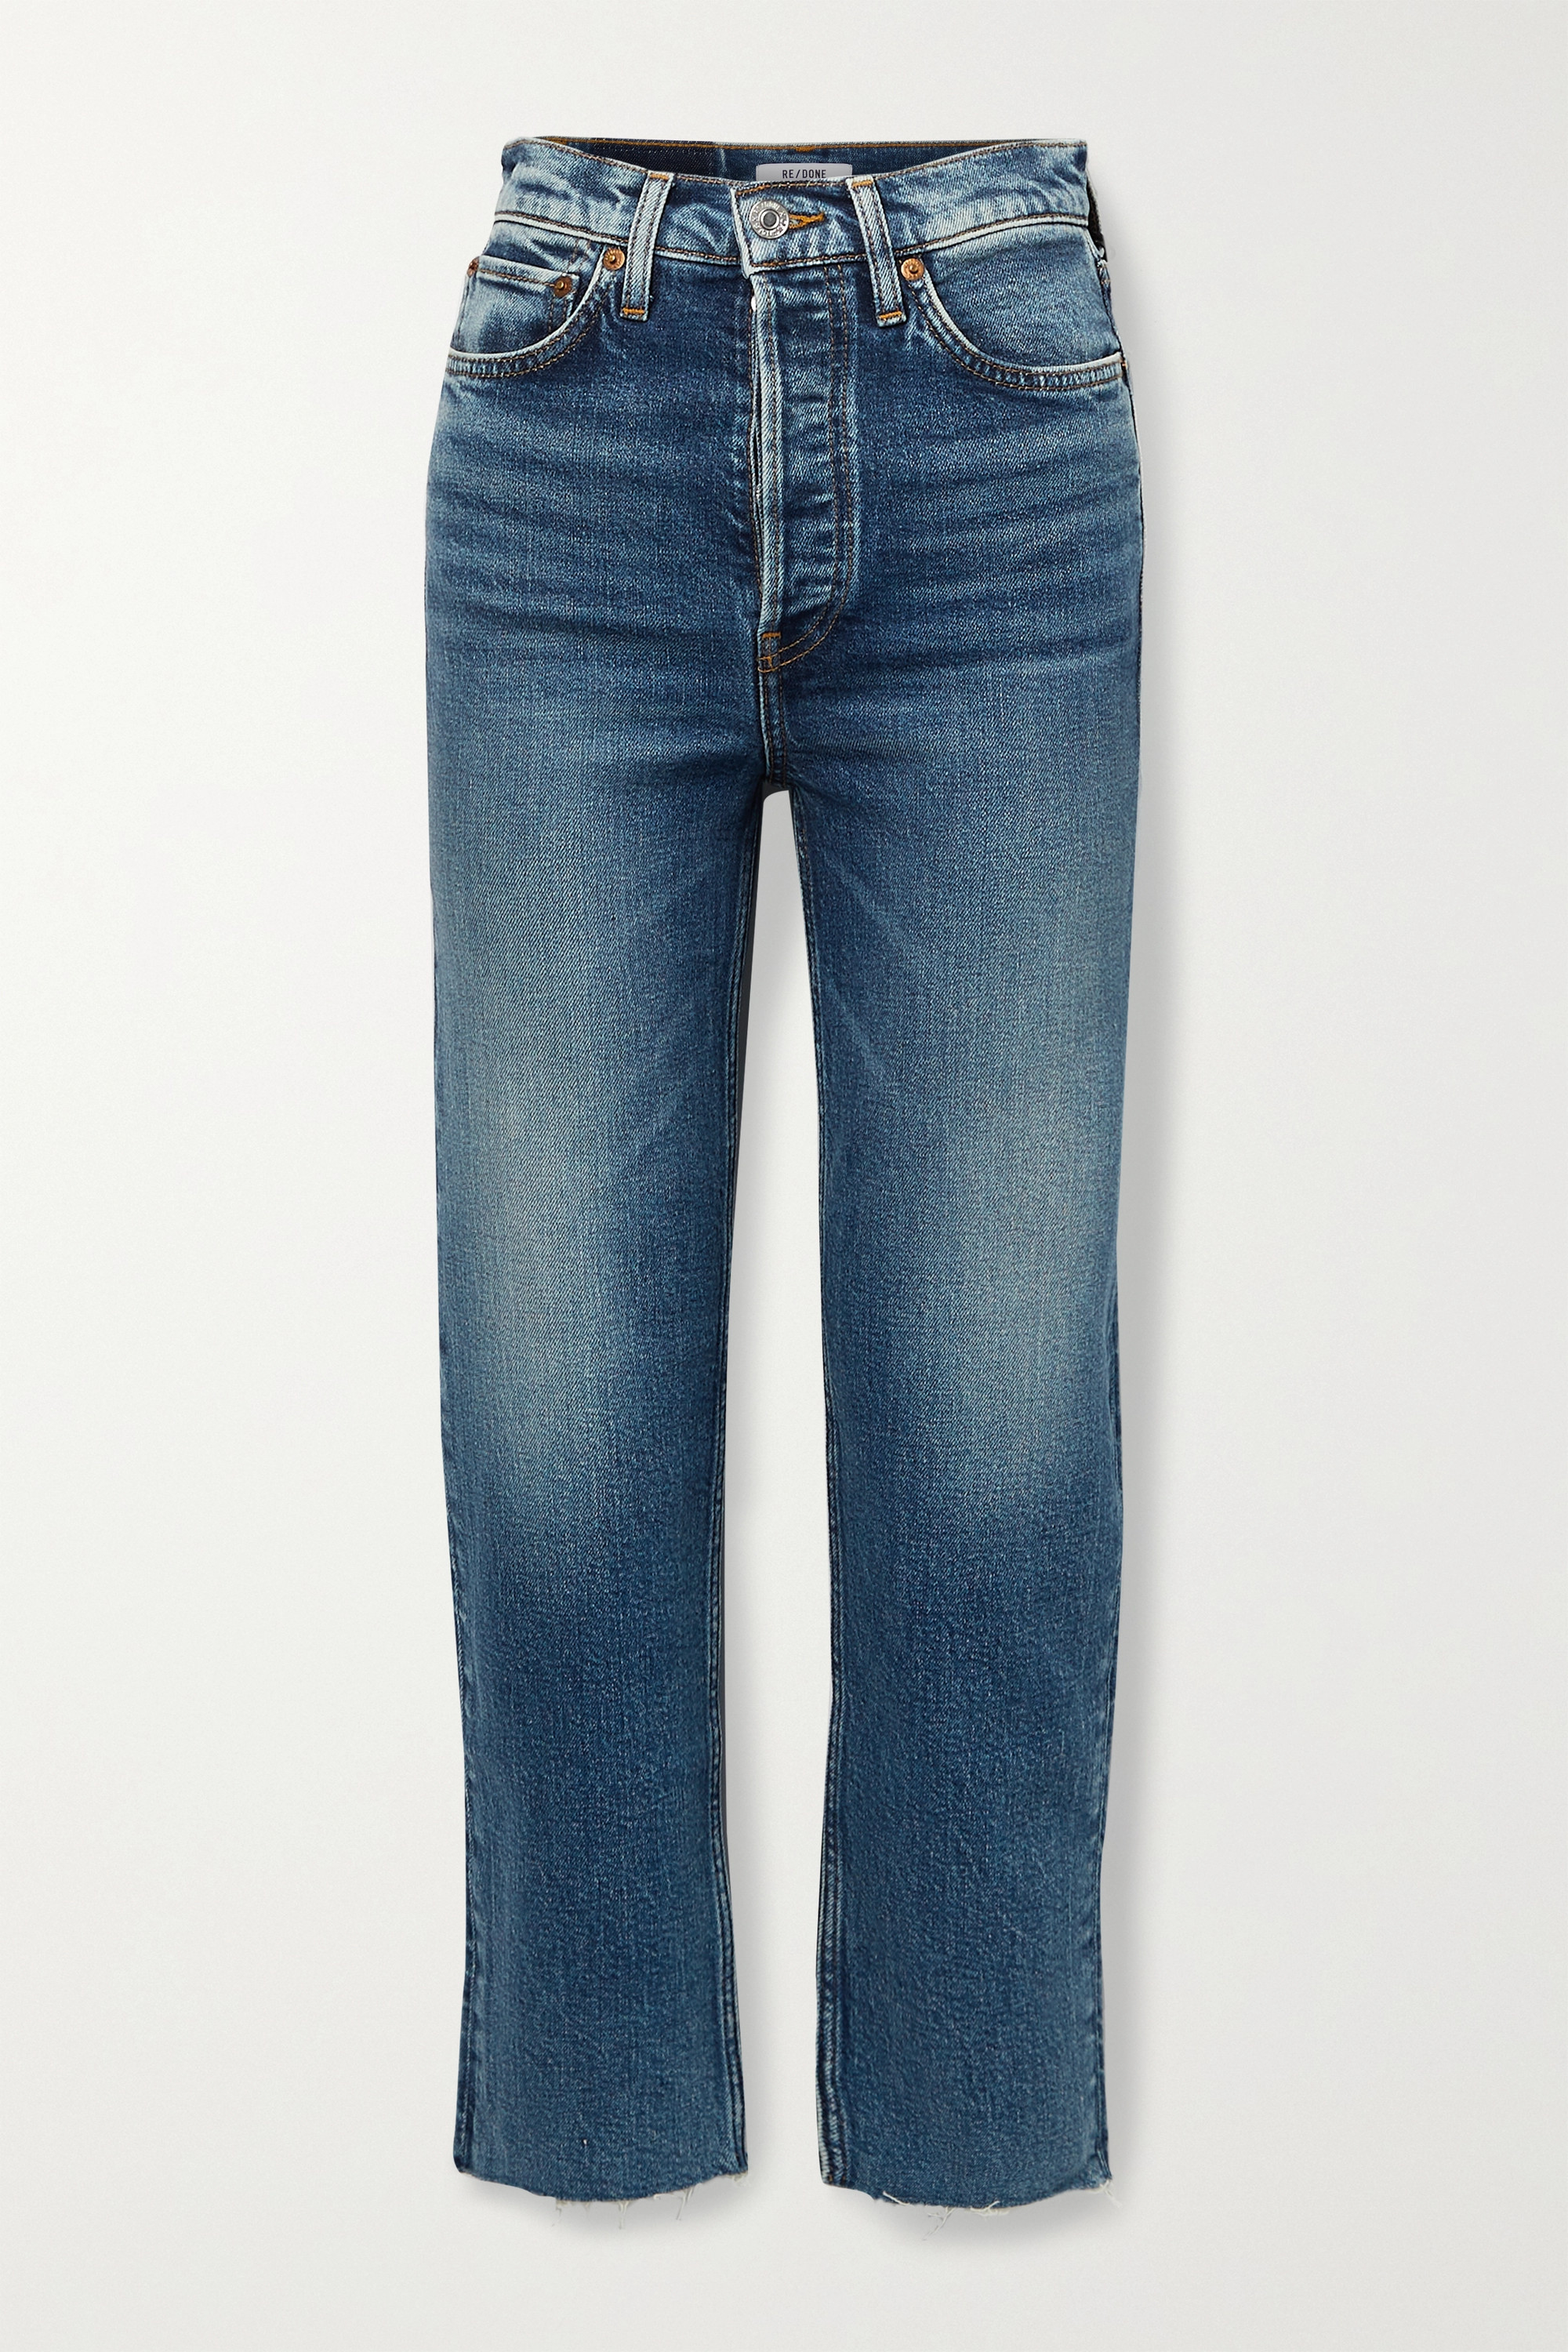 RE/DONE Ultra High Rise Stove Pipe Comfort Stretch Jeans mit geradem Bein